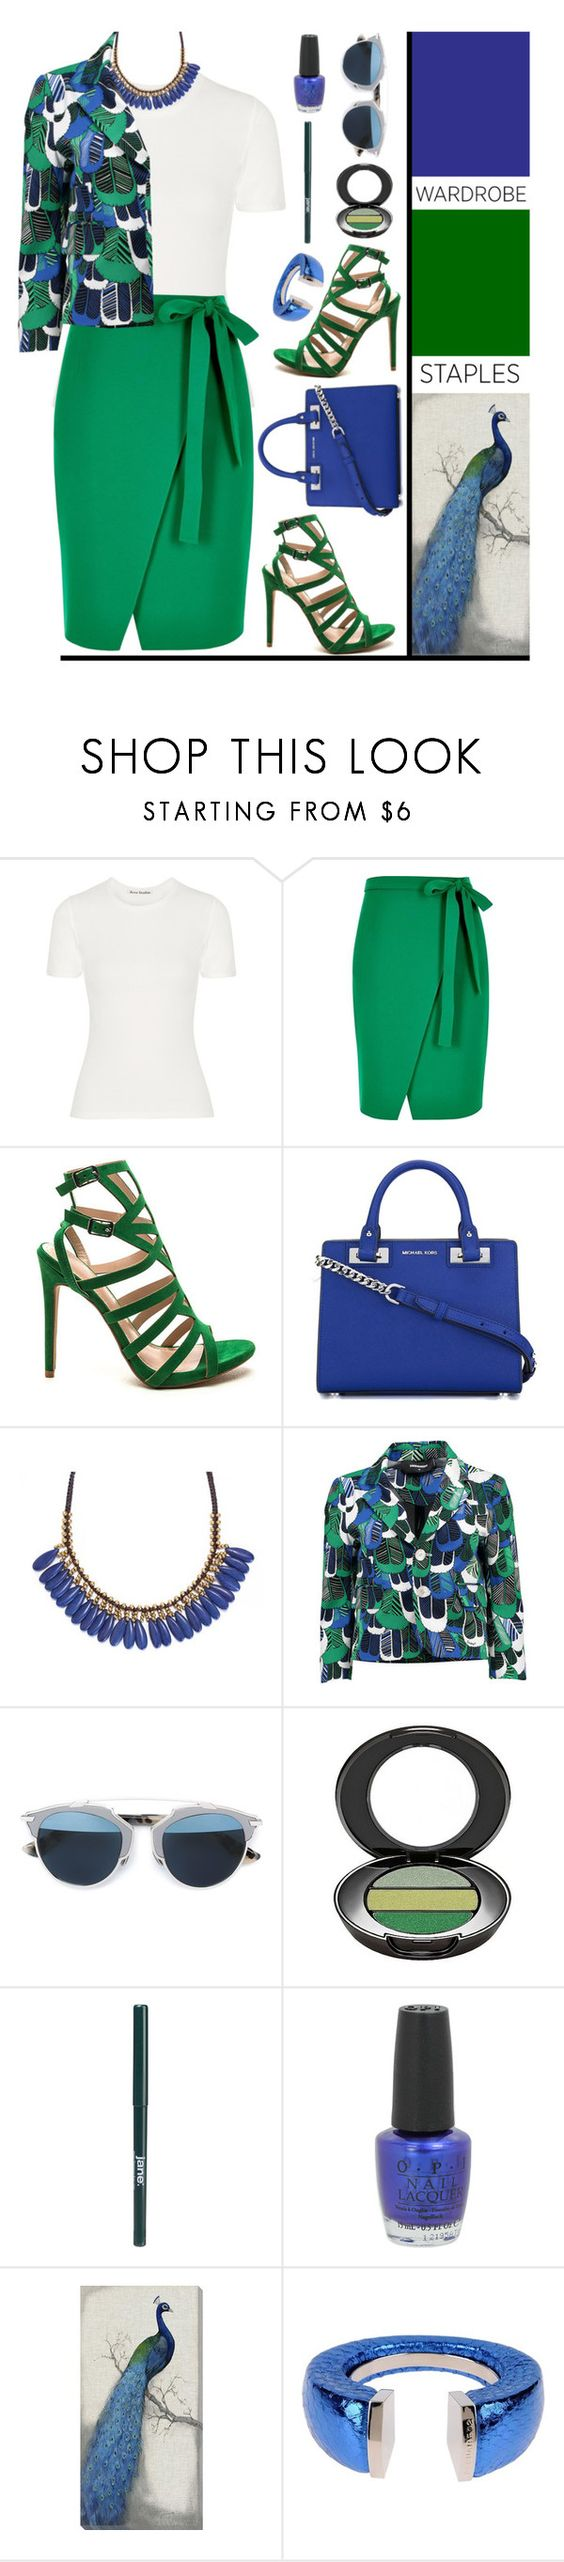 """White T-Shirt'"" by dianefantasy ❤ liked on Polyvore featuring Acne Studios, River Island, MICHAEL Michael Kors, Roni Kantor, Christian Dior, Boots No7, jane, OPI, Home Decorators Collection and Dsquared2"